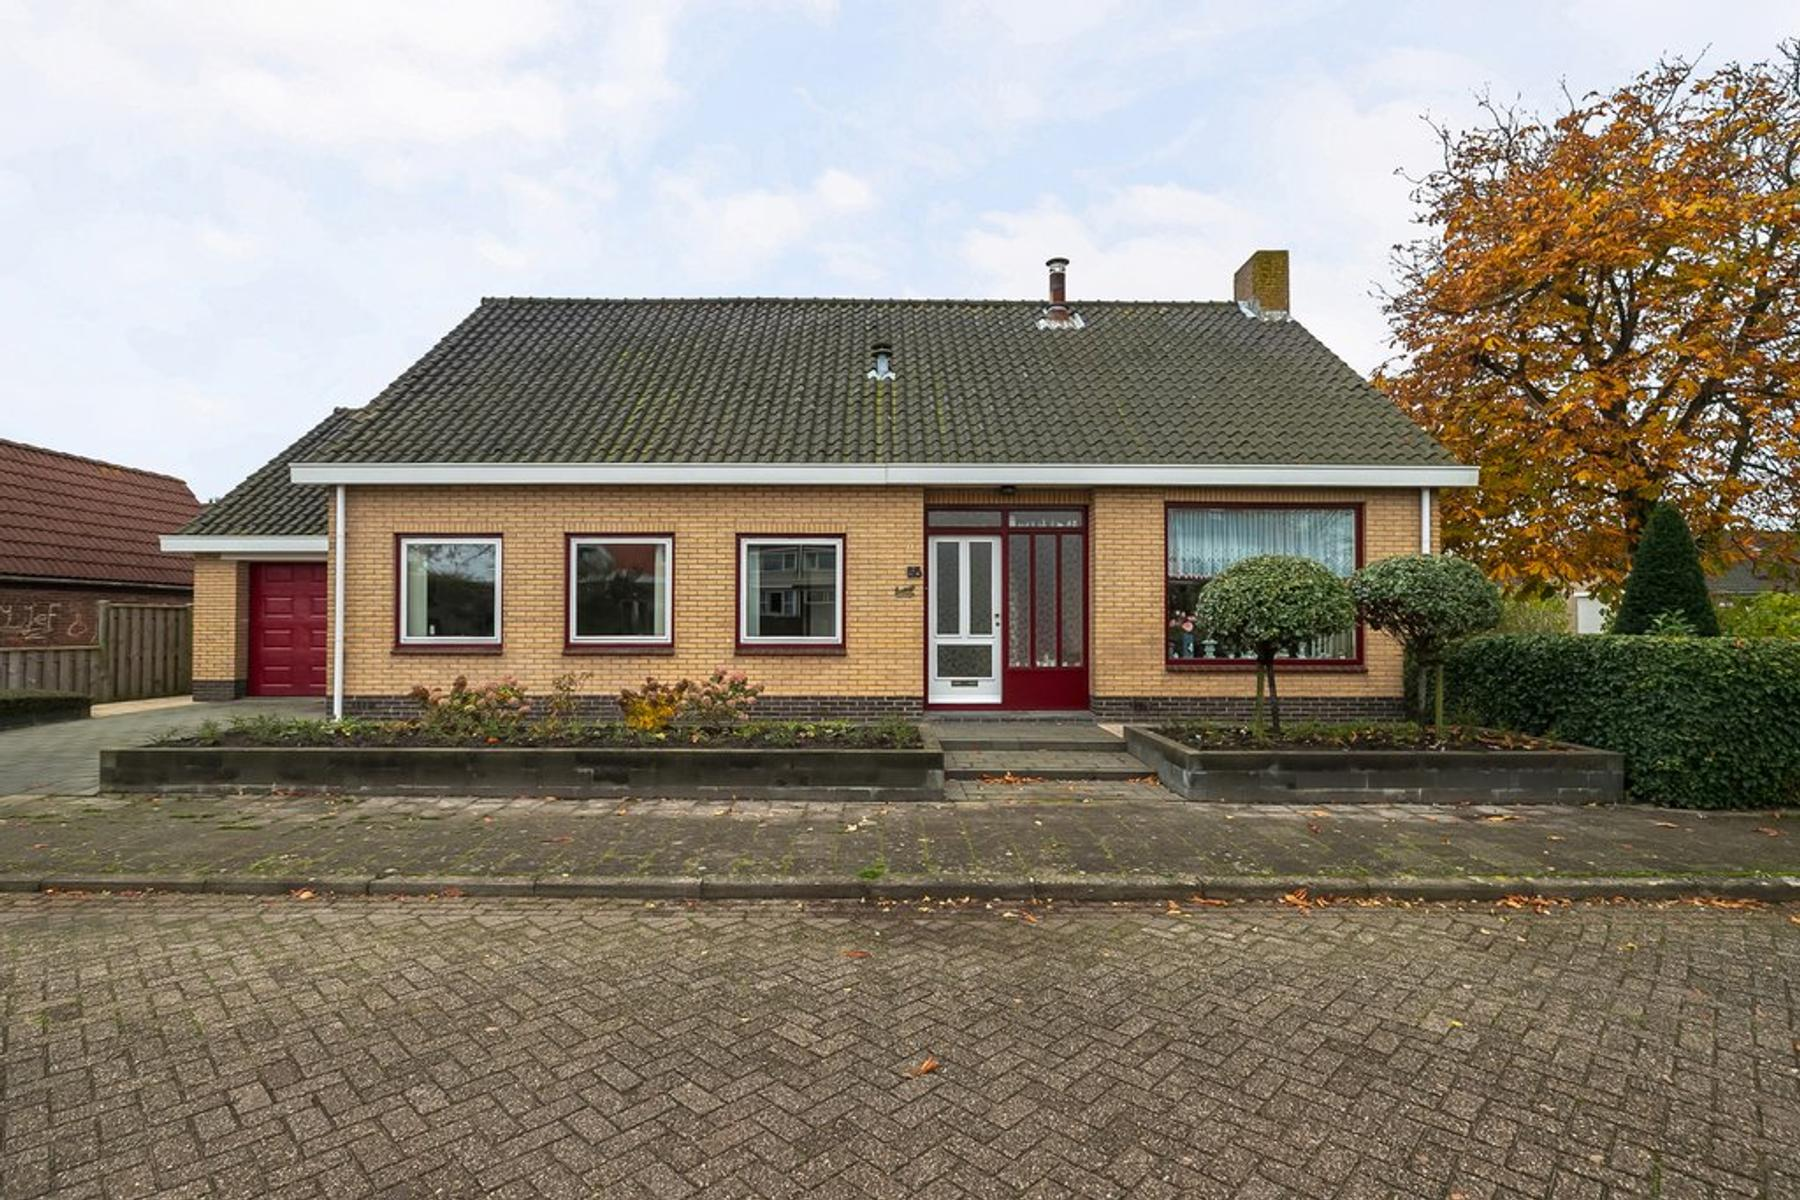 Steengrachtstraat 55 in Vlissingen 4386 AS